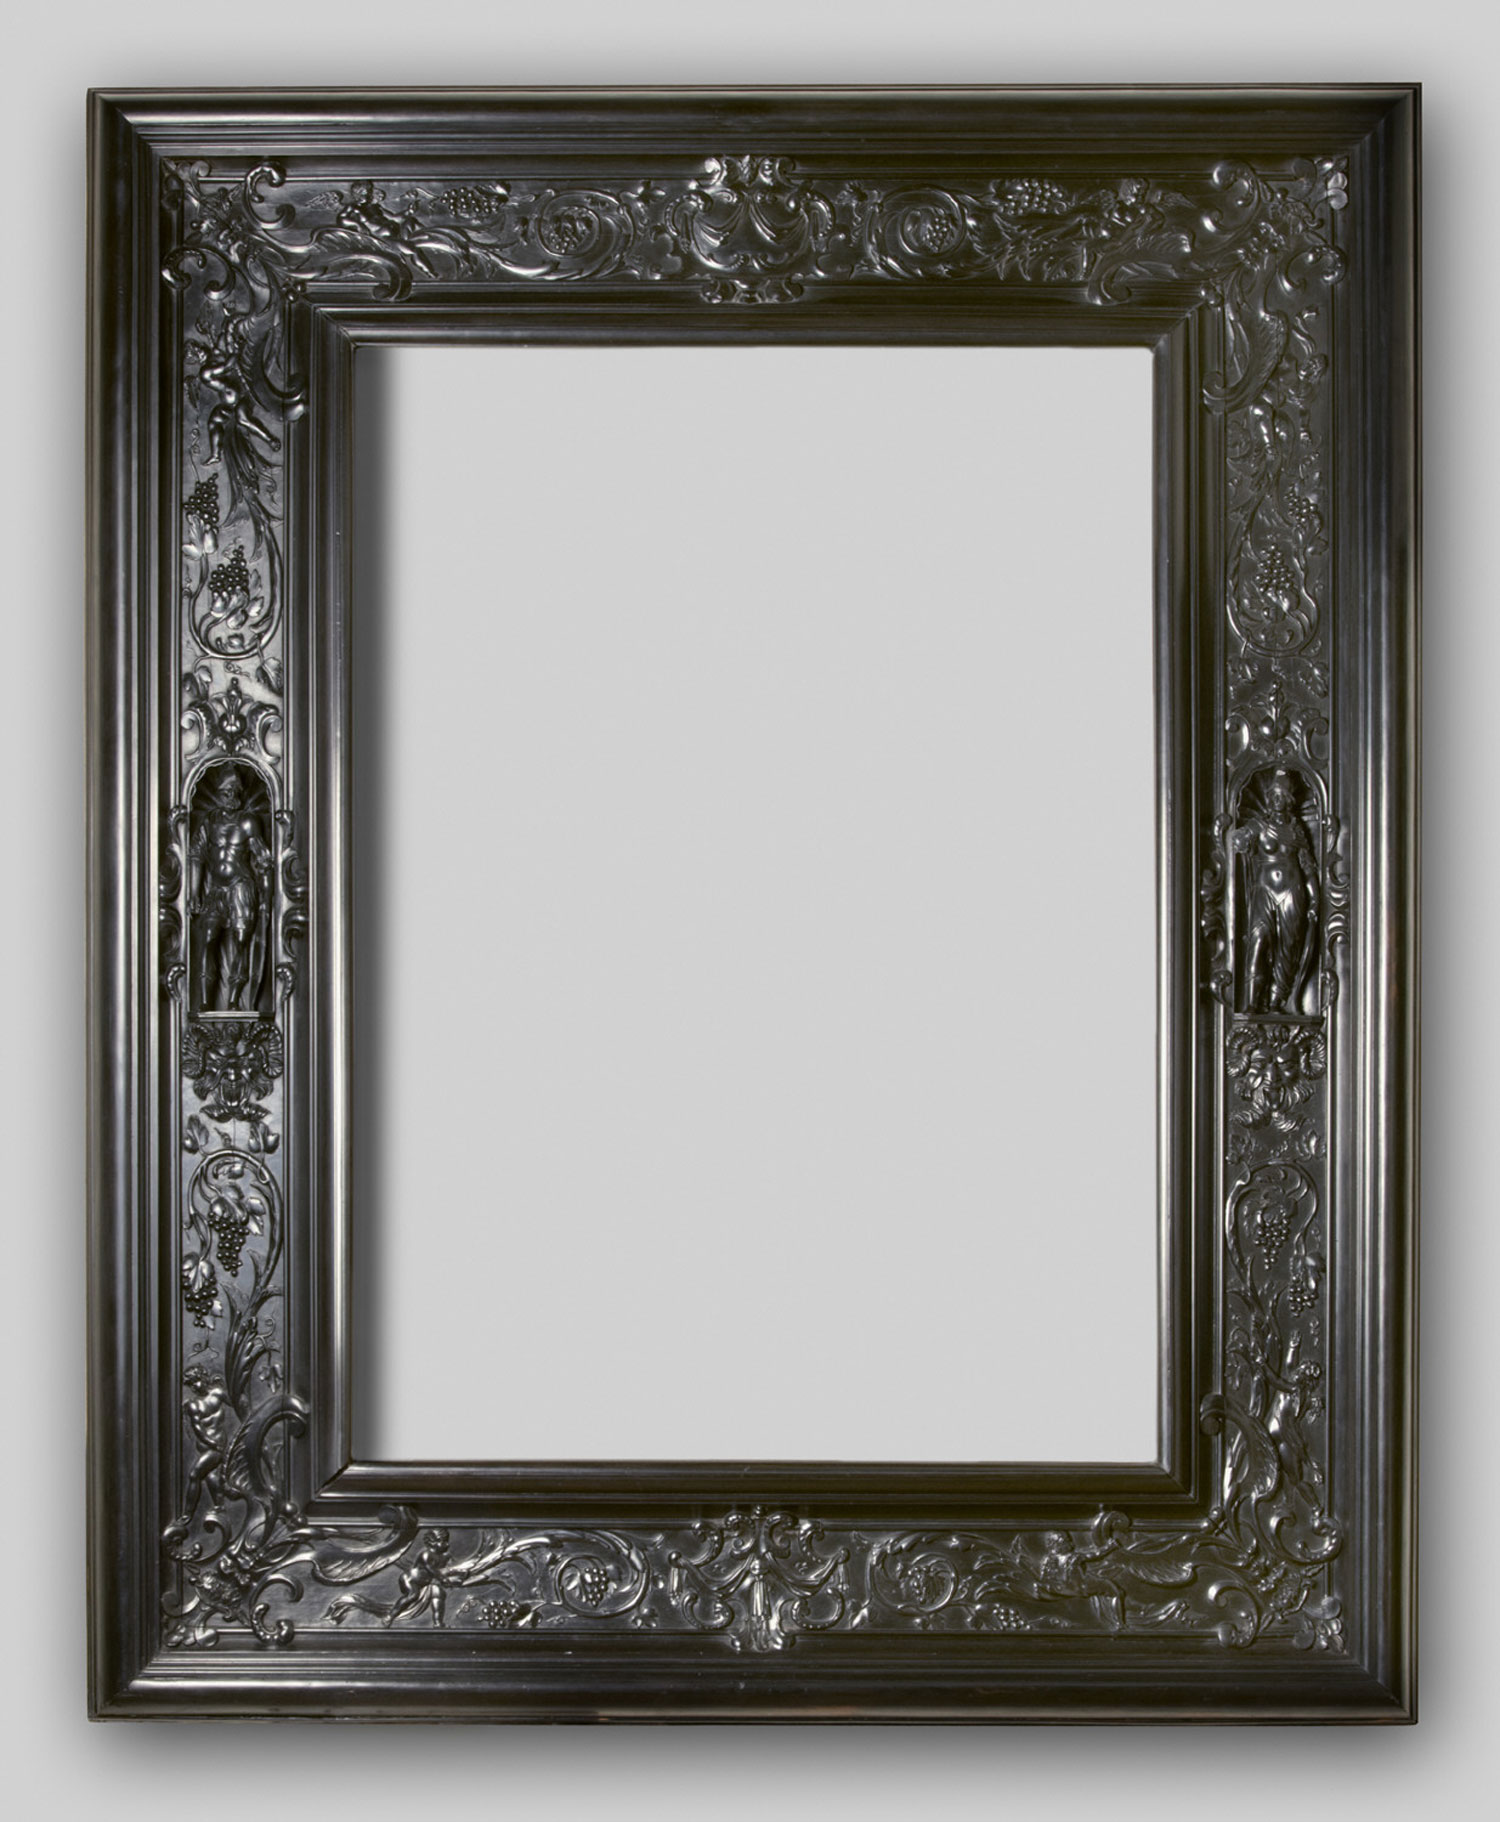 Frame with Figures of Mars and Minerva